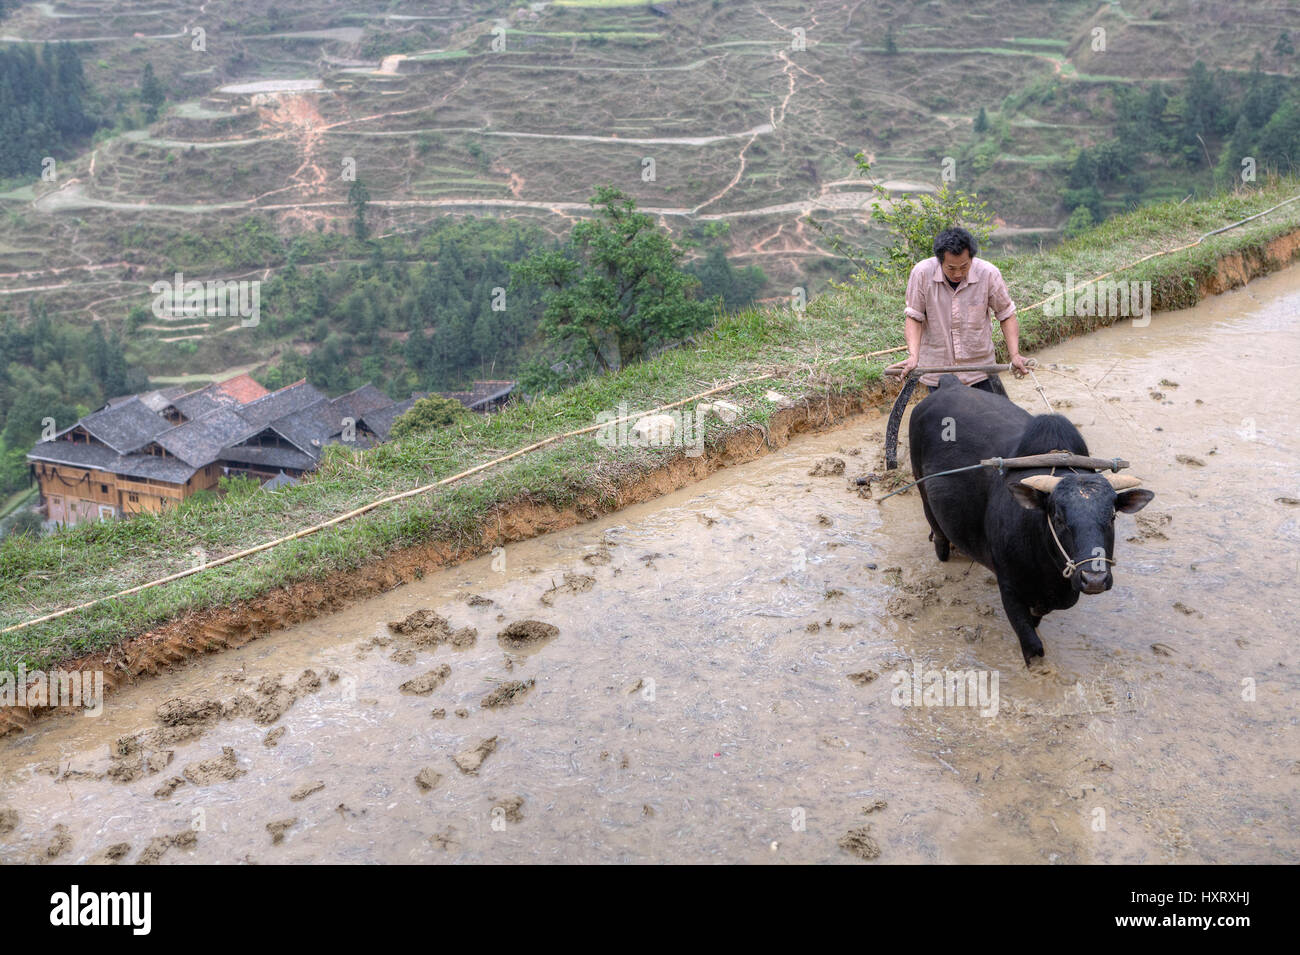 Zhaoxing Dong Village, Guizhou Province, China -  April 9, 2010: farmer plowing his flooded rice paddy with bull. Stock Photo